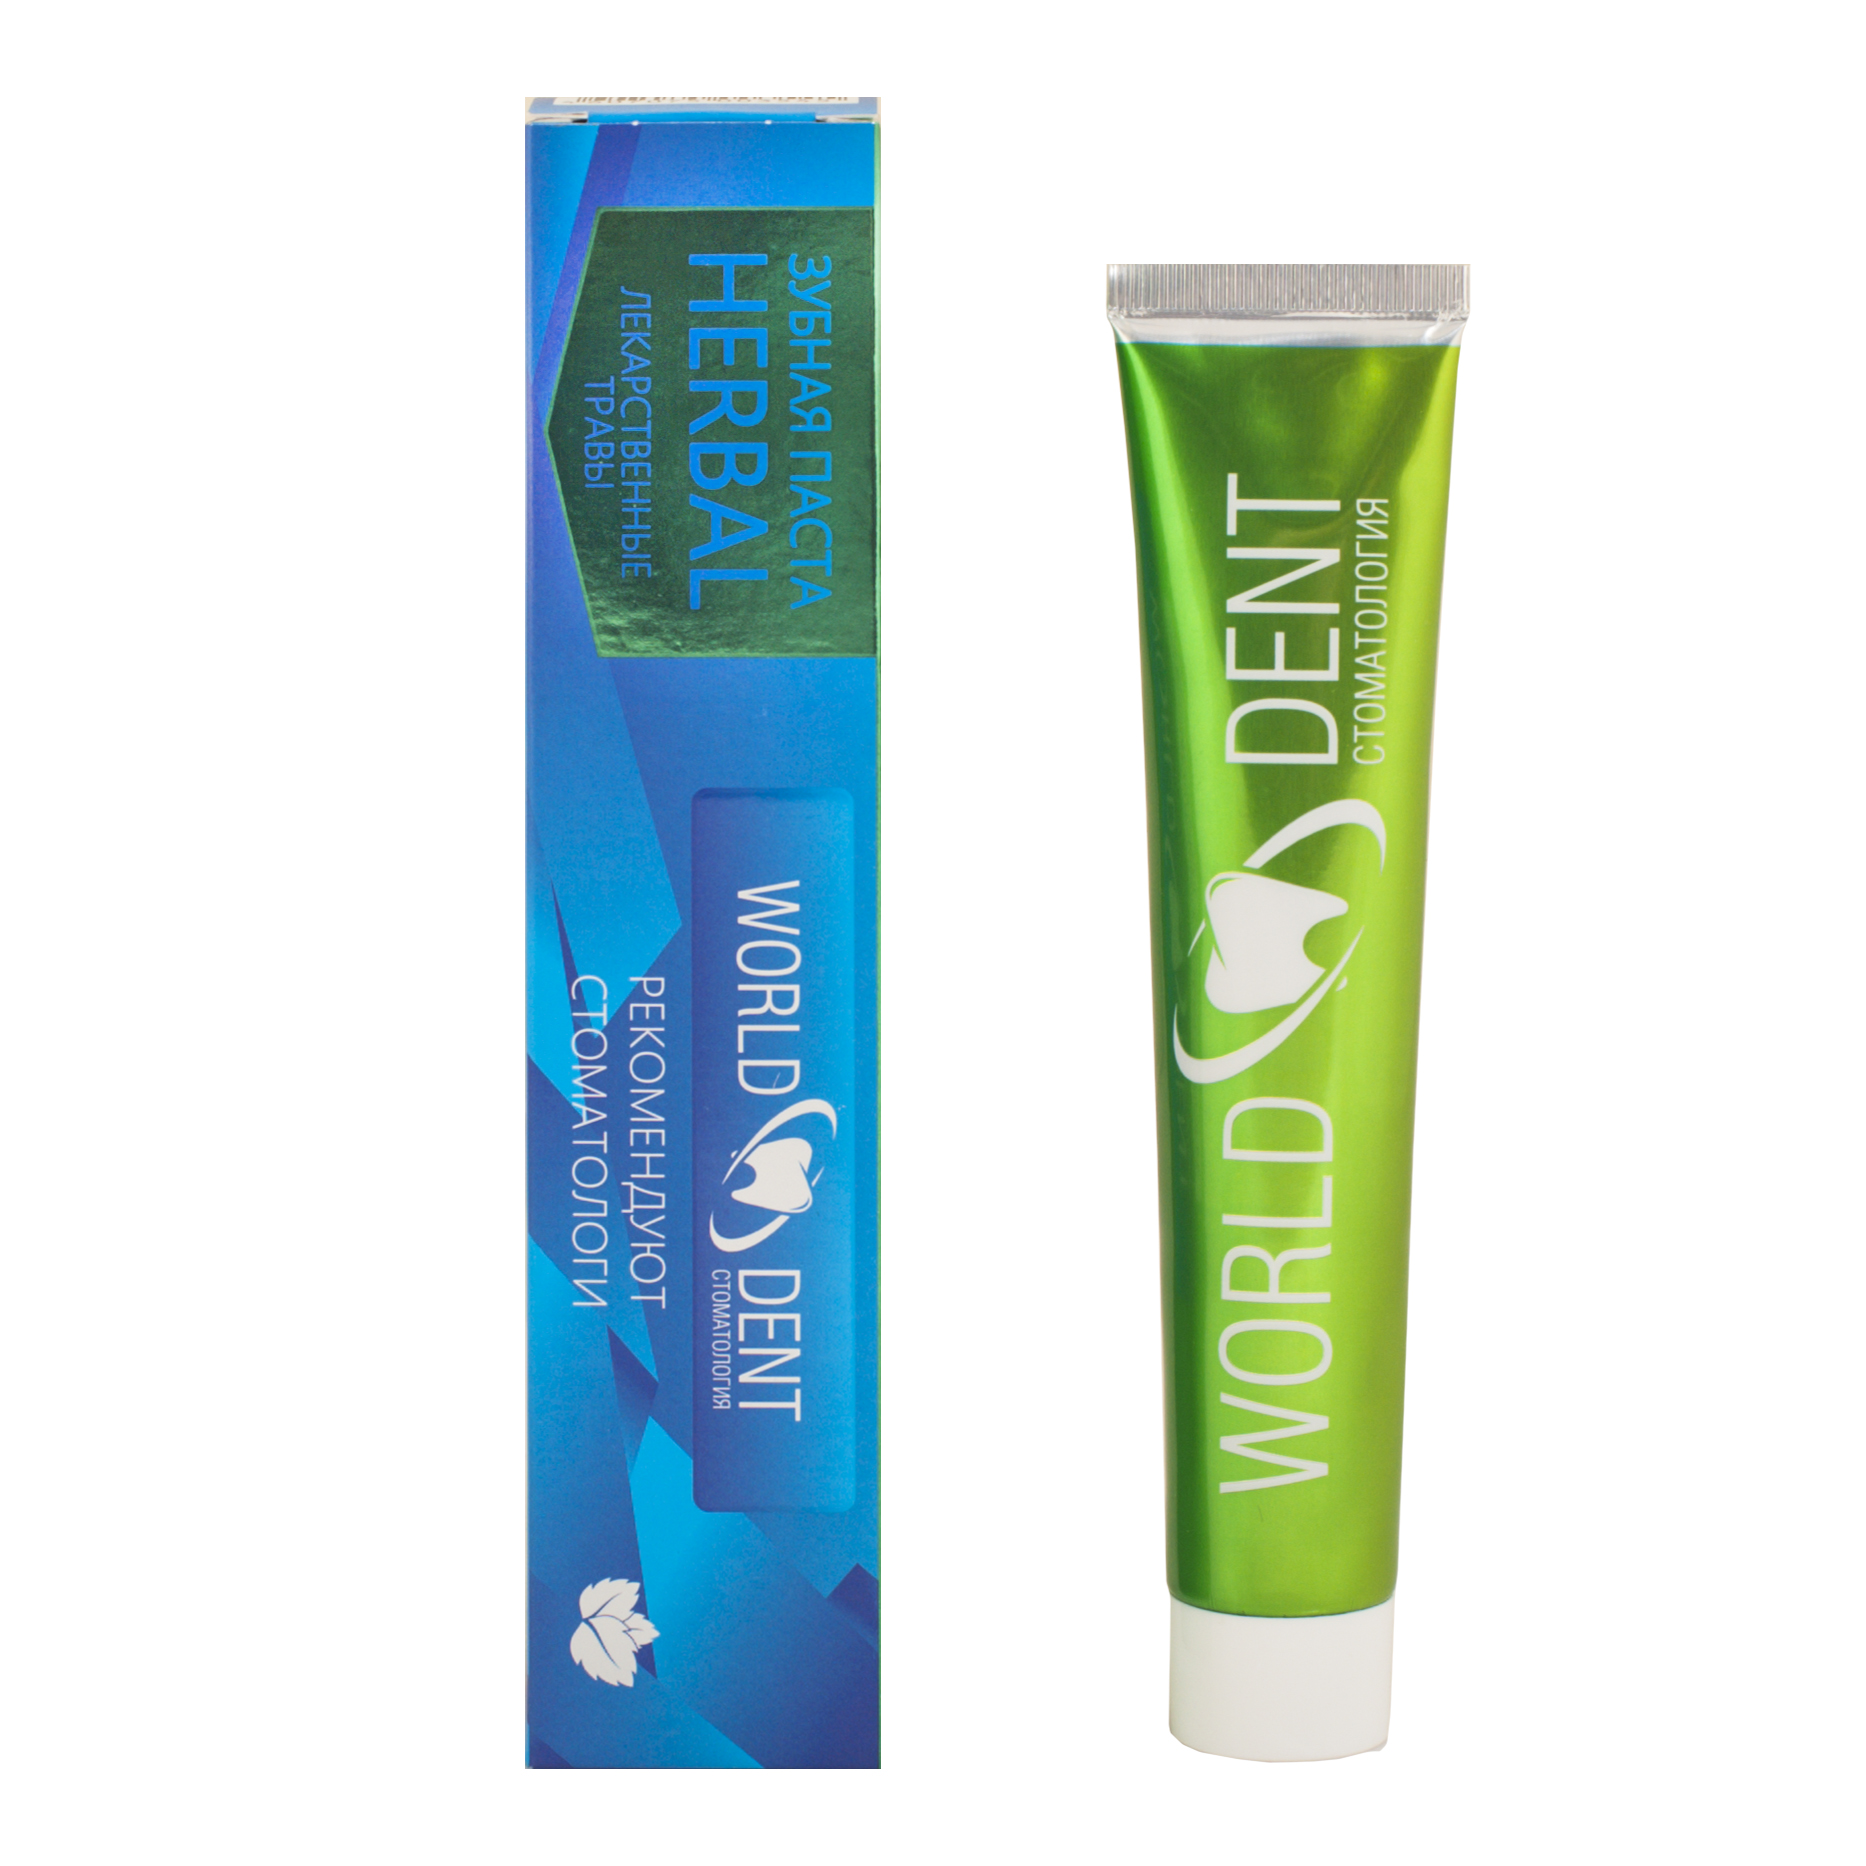 world dent herbal